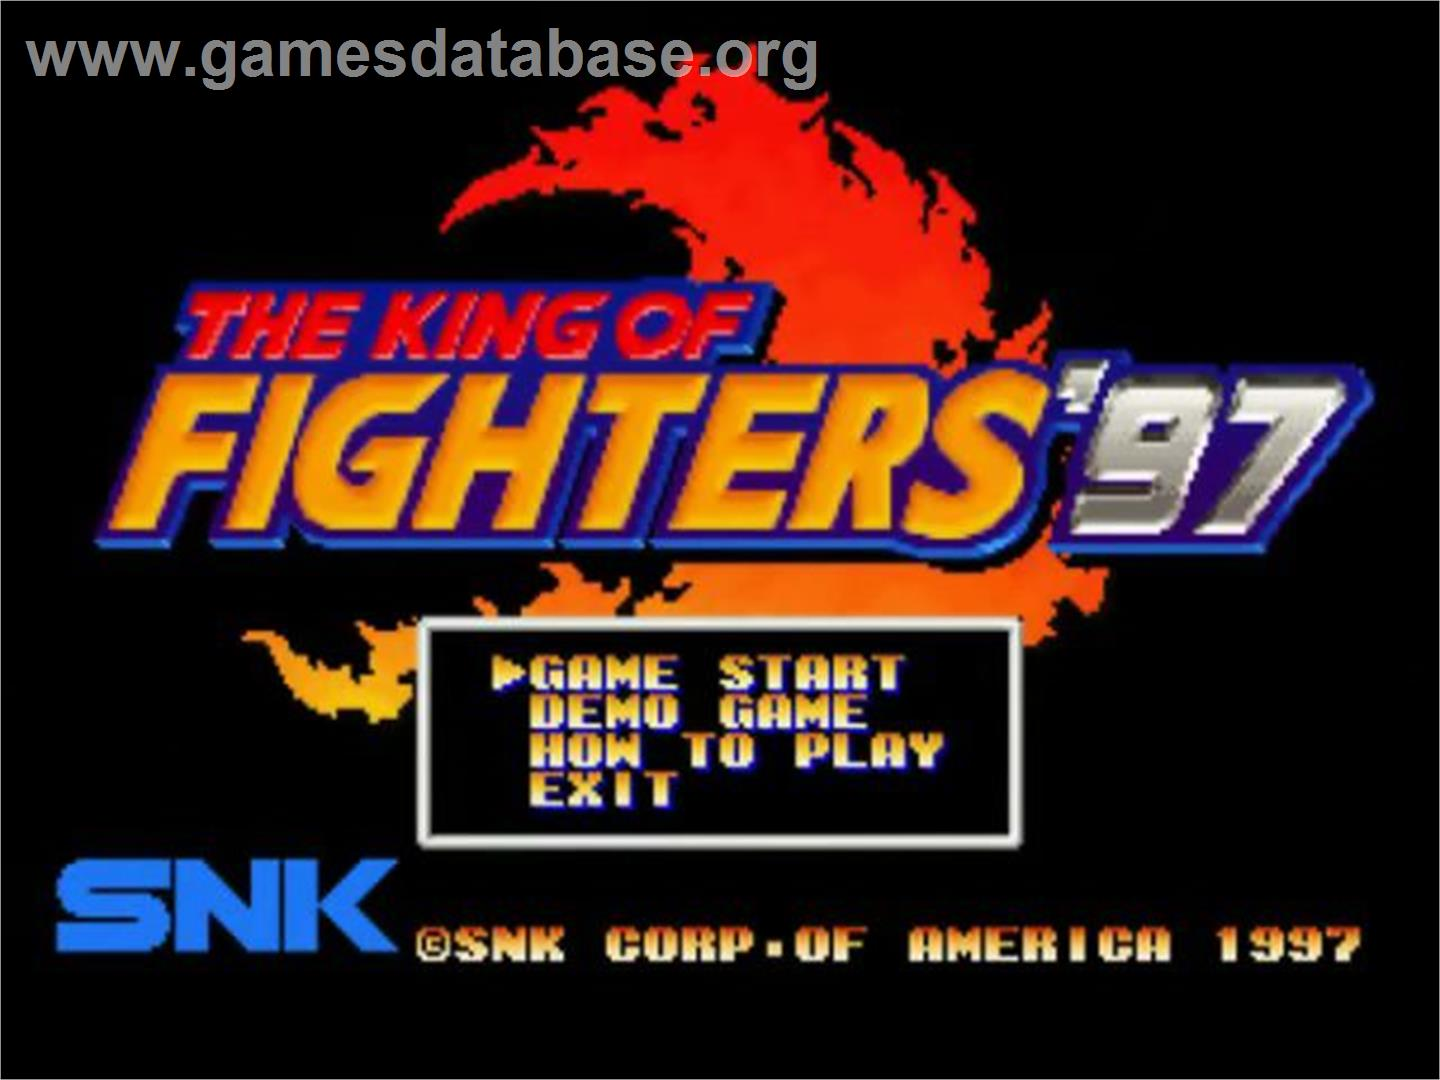 The King of Fighters '97 - SNK Neo-Geo CD - Artwork - Title Screen